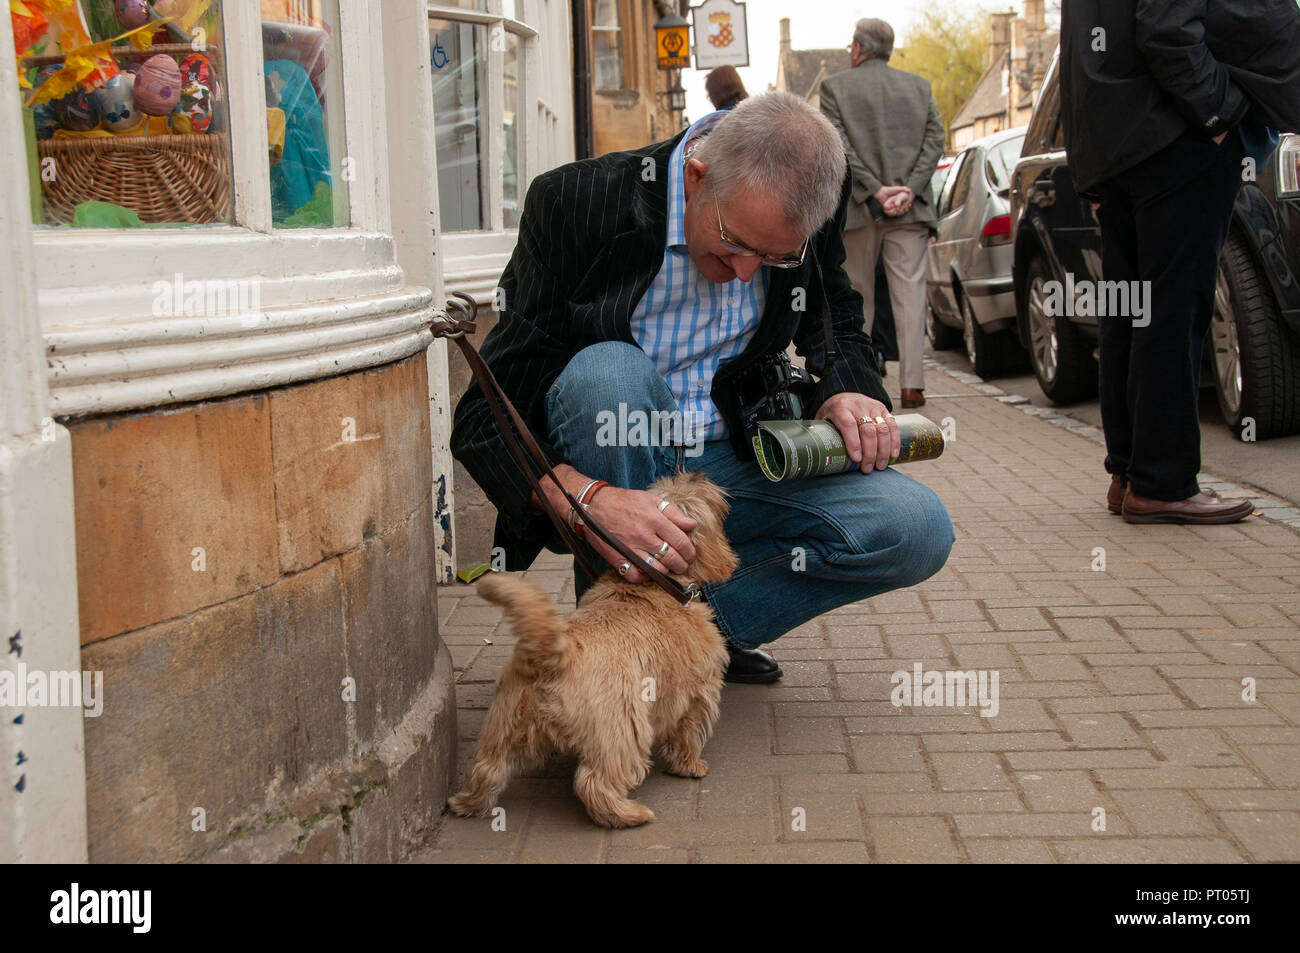 Older smartly dressed man in shirt and blazer, holding a rolled up magazine squatting down to stroke a little terrier tied up on the pavement outside. - Stock Image